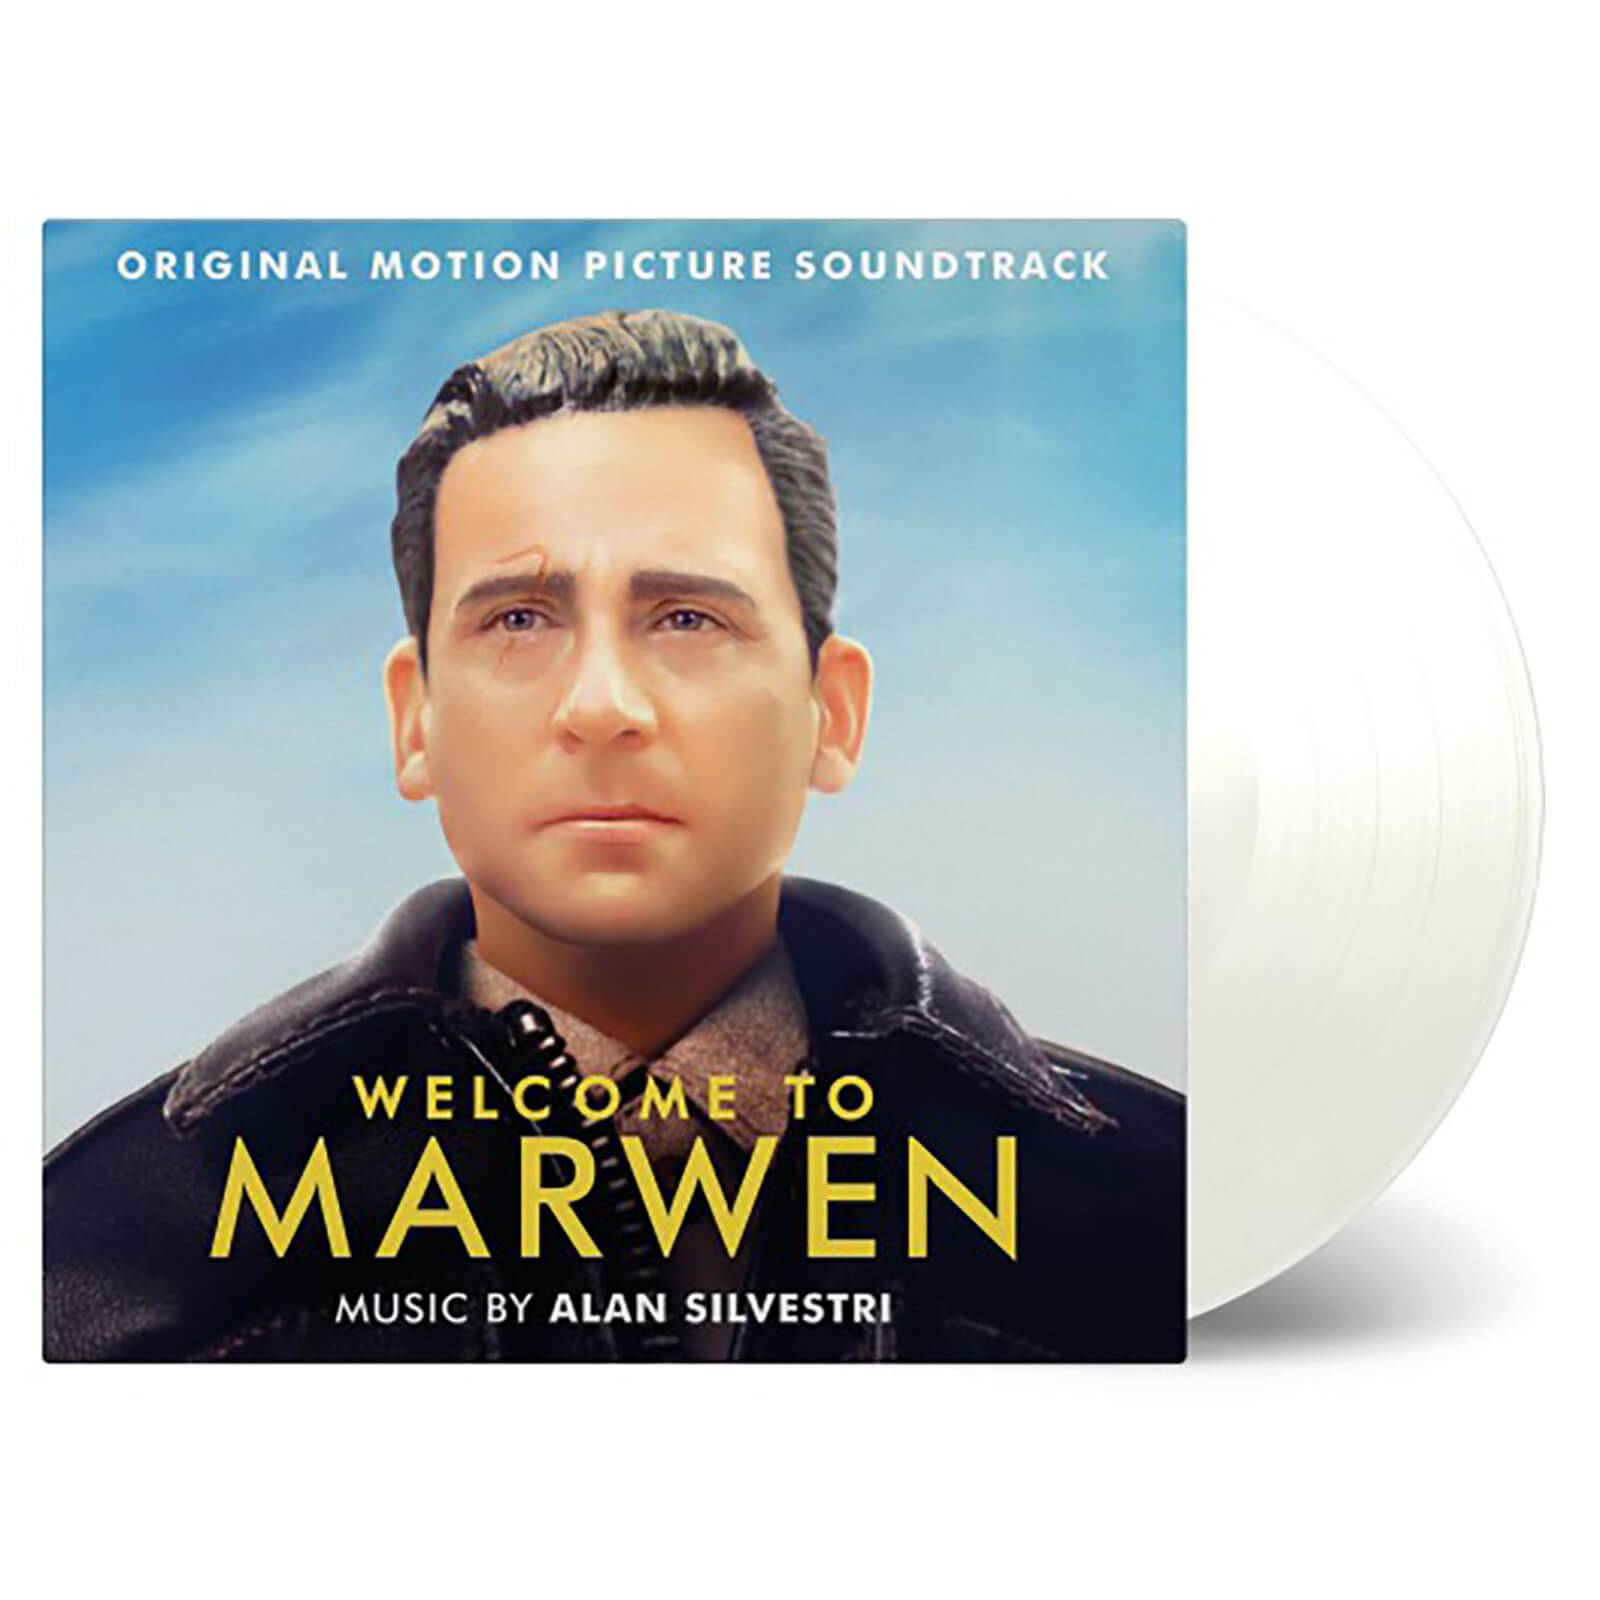 Music On Vinyl: At The Movies lan Silvestri - Welcome To Marwen (Soundtrack) [2LP] (LIMITED CLEAR 180 Gram Audiophile Vinyl, gatefold, PVC sleeve, numbered to 500)